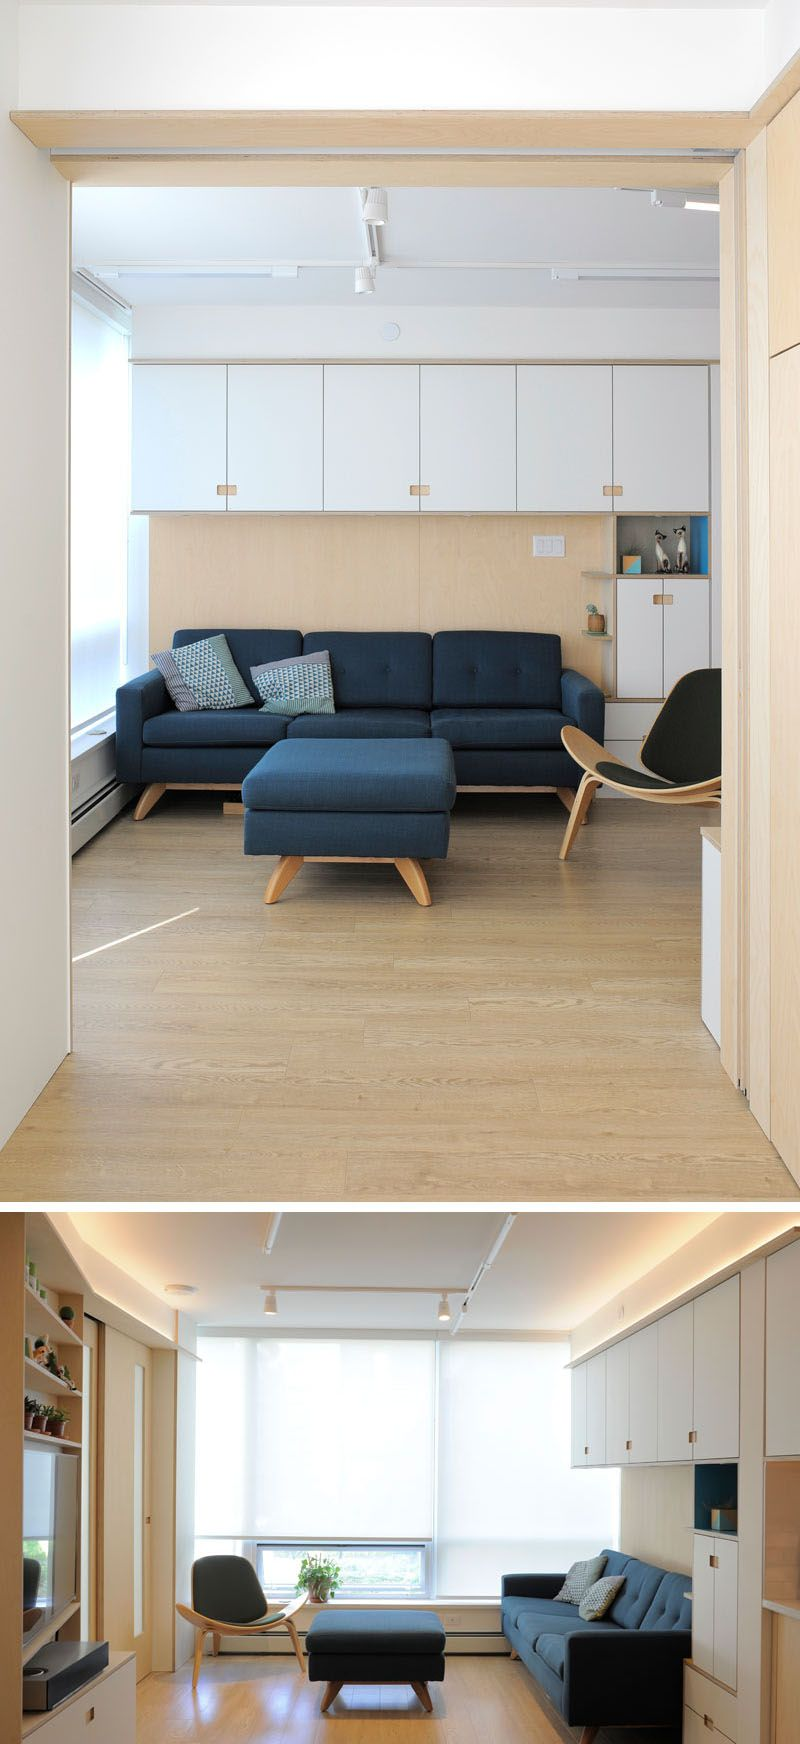 Plenty of creative small space storage solutions were added to this